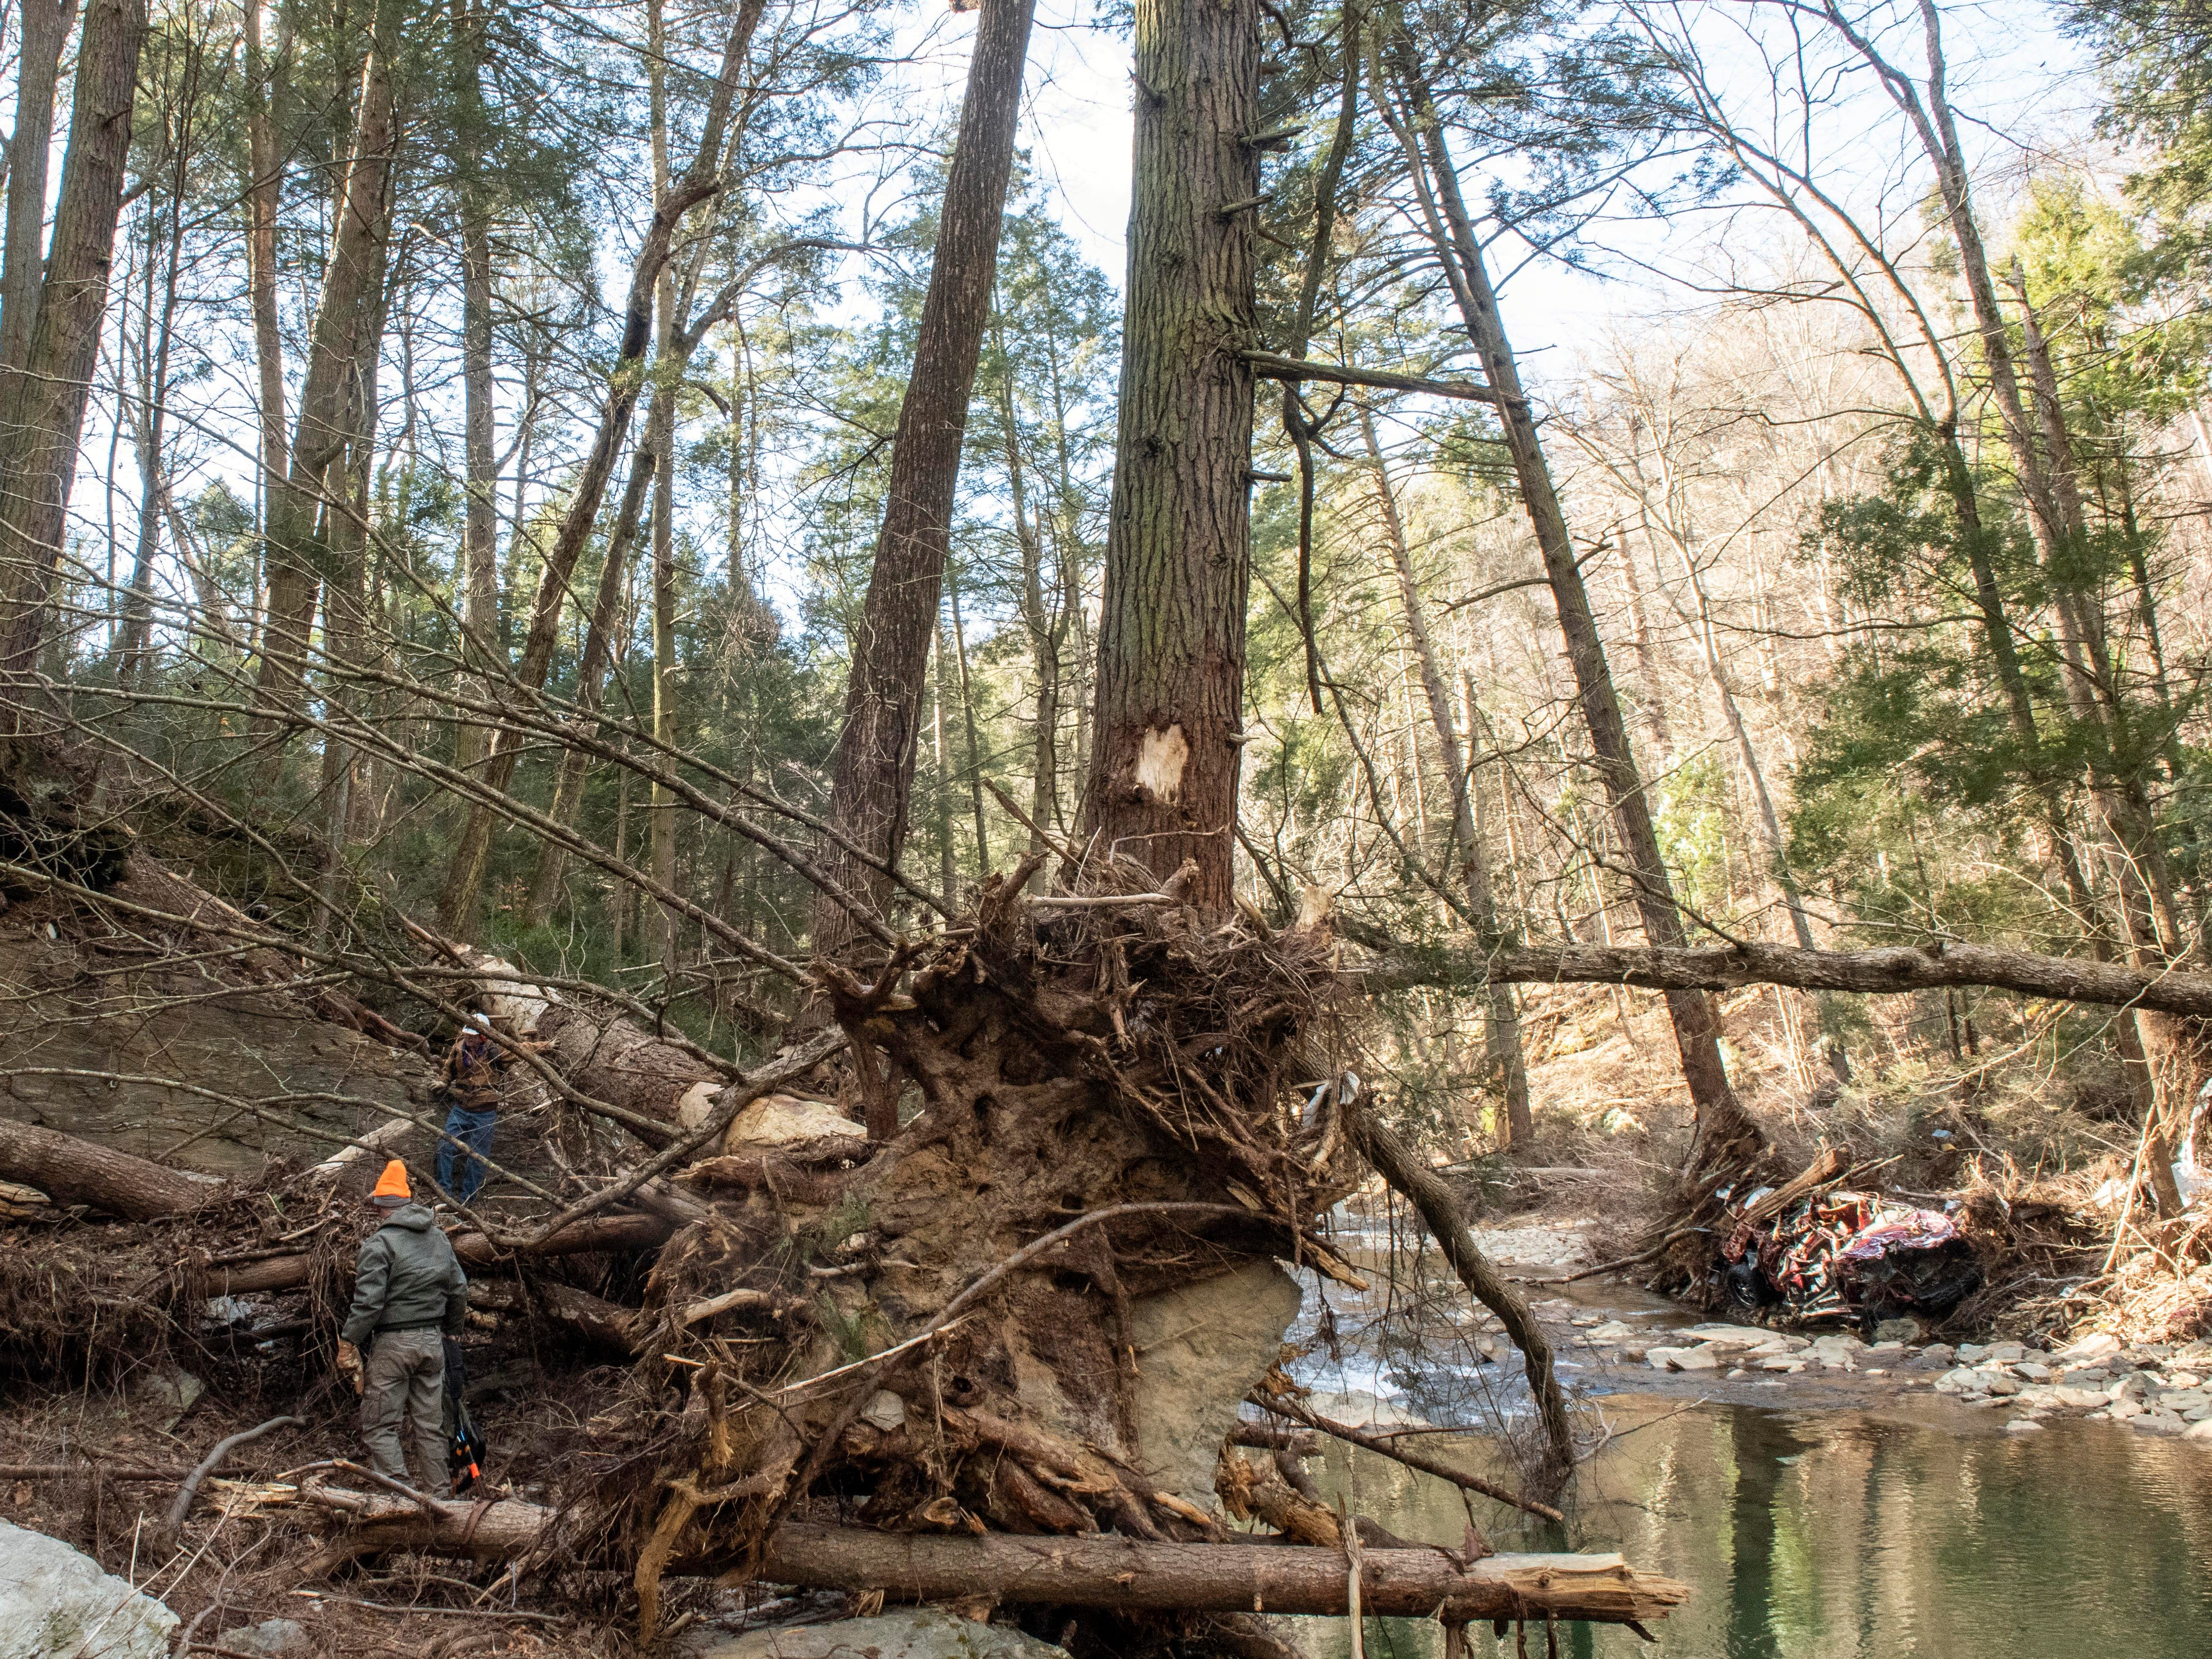 Volunteers show the scale of a downed tree, sitting across from a crumpled-up Ford truck (right), Thursday, Jan. 10, 2019. Flooding that ravaged many parts of York County in Aug. 2018 swept debris into Otter Creek, in Airville.